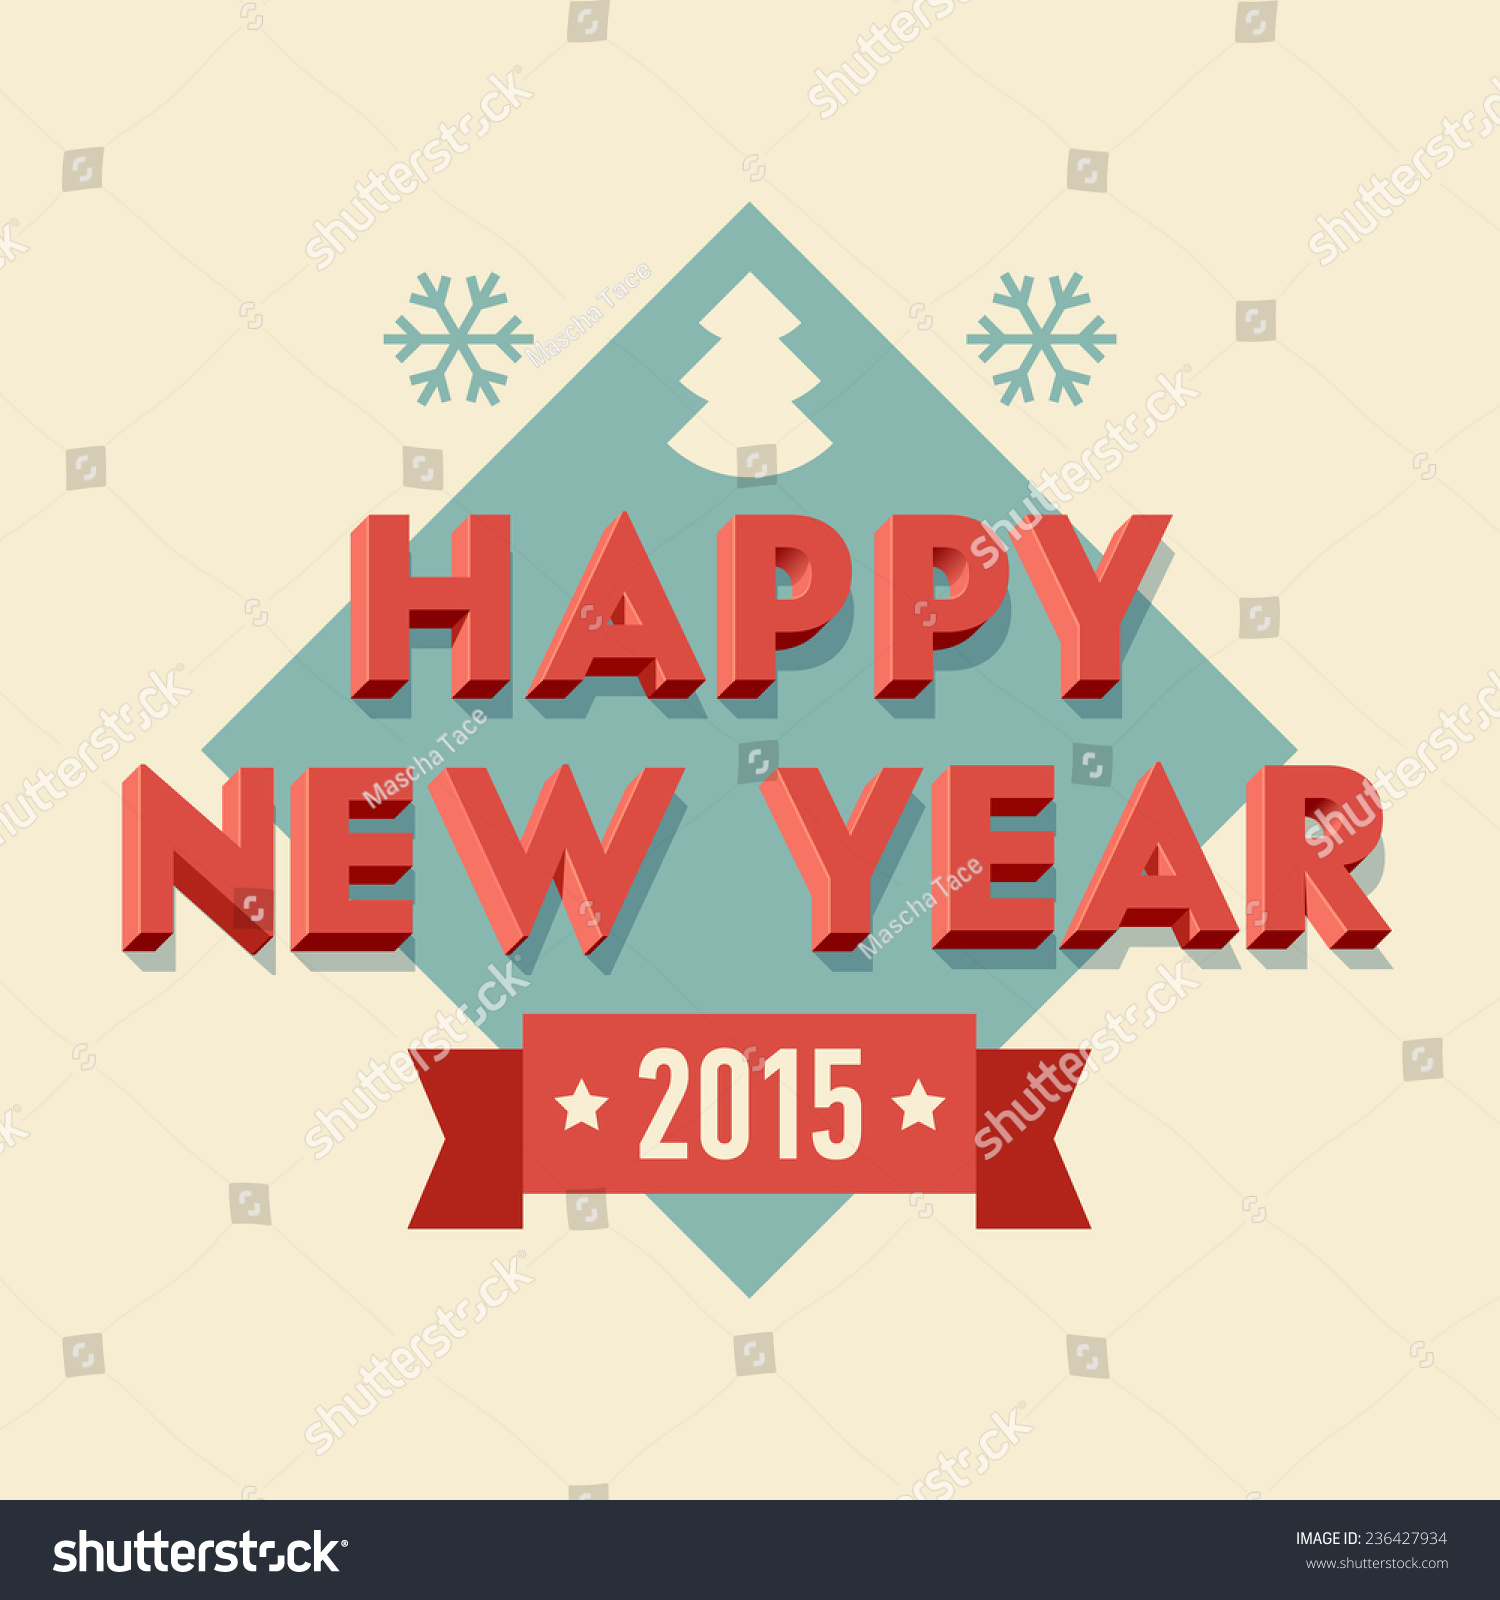 Vector modern retro design on happy stock vector 236427934 vector modern retro design on happy new year celebration cover art for your happy 2015 kristyandbryce Choice Image